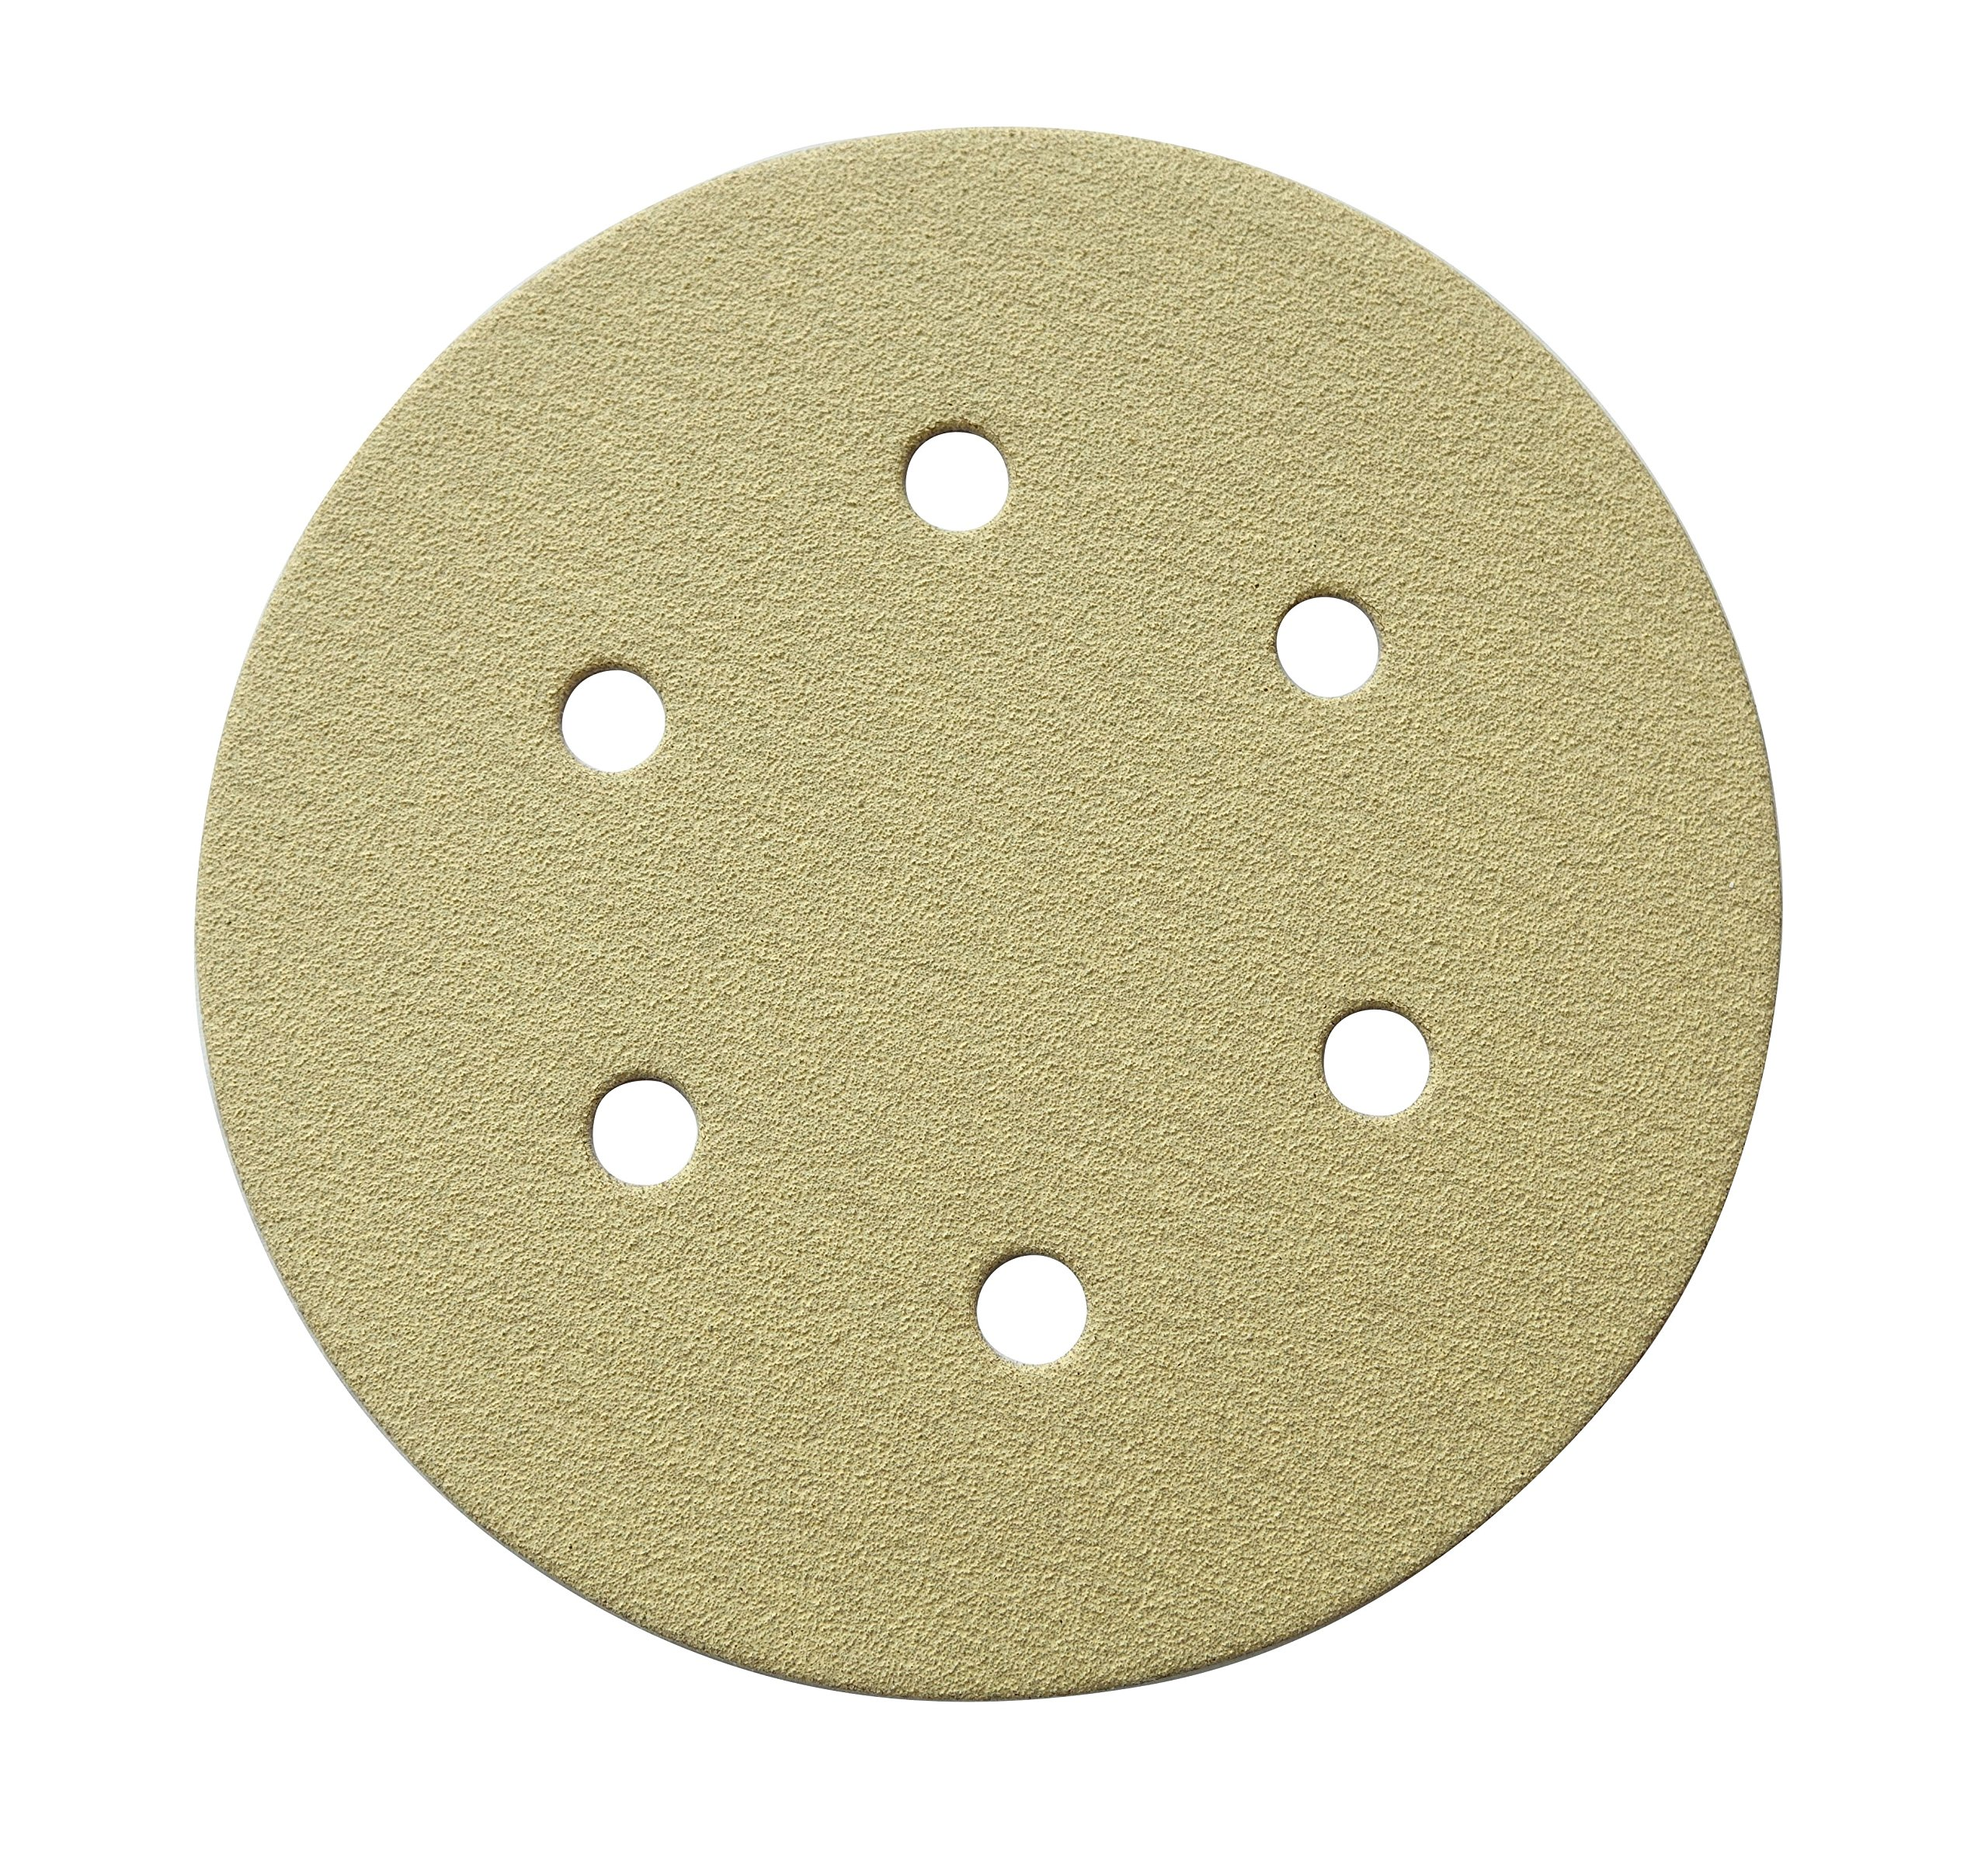 POWERTEC 45215G-50  6-Inch 6 Hole 150 Grit Hook and Loop Sanding Discs, Gold, 50-Pack